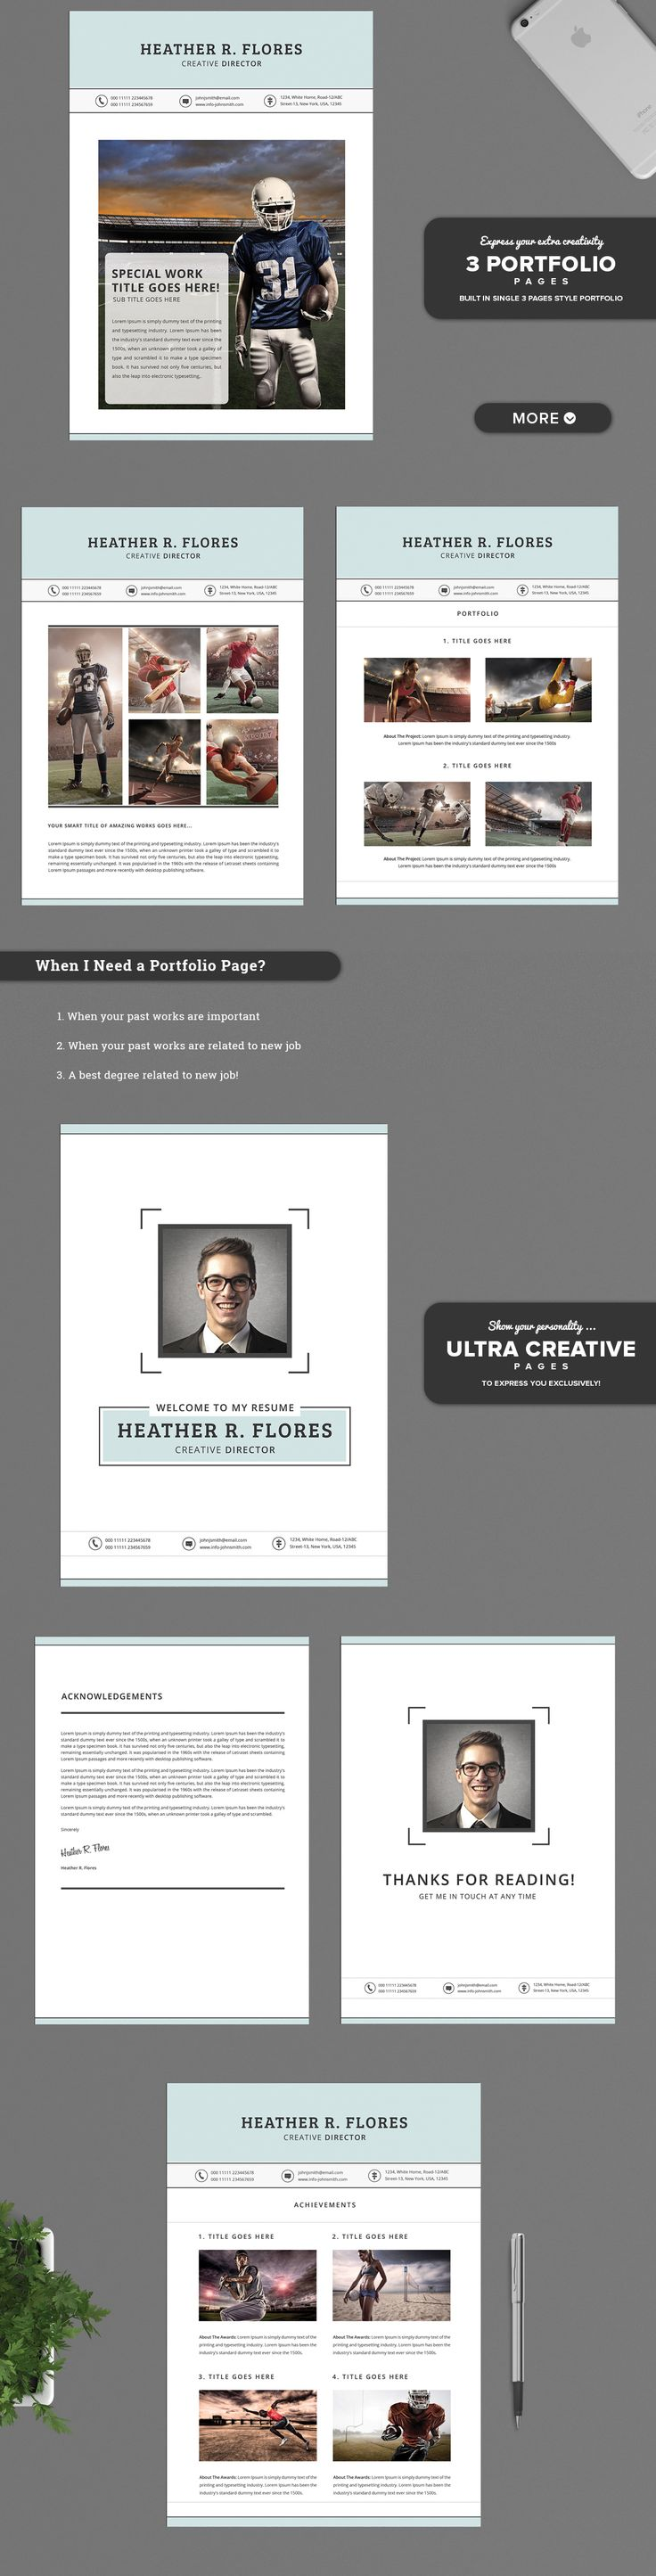 16 Best Resume Images On Pinterest Resume Cv Professional